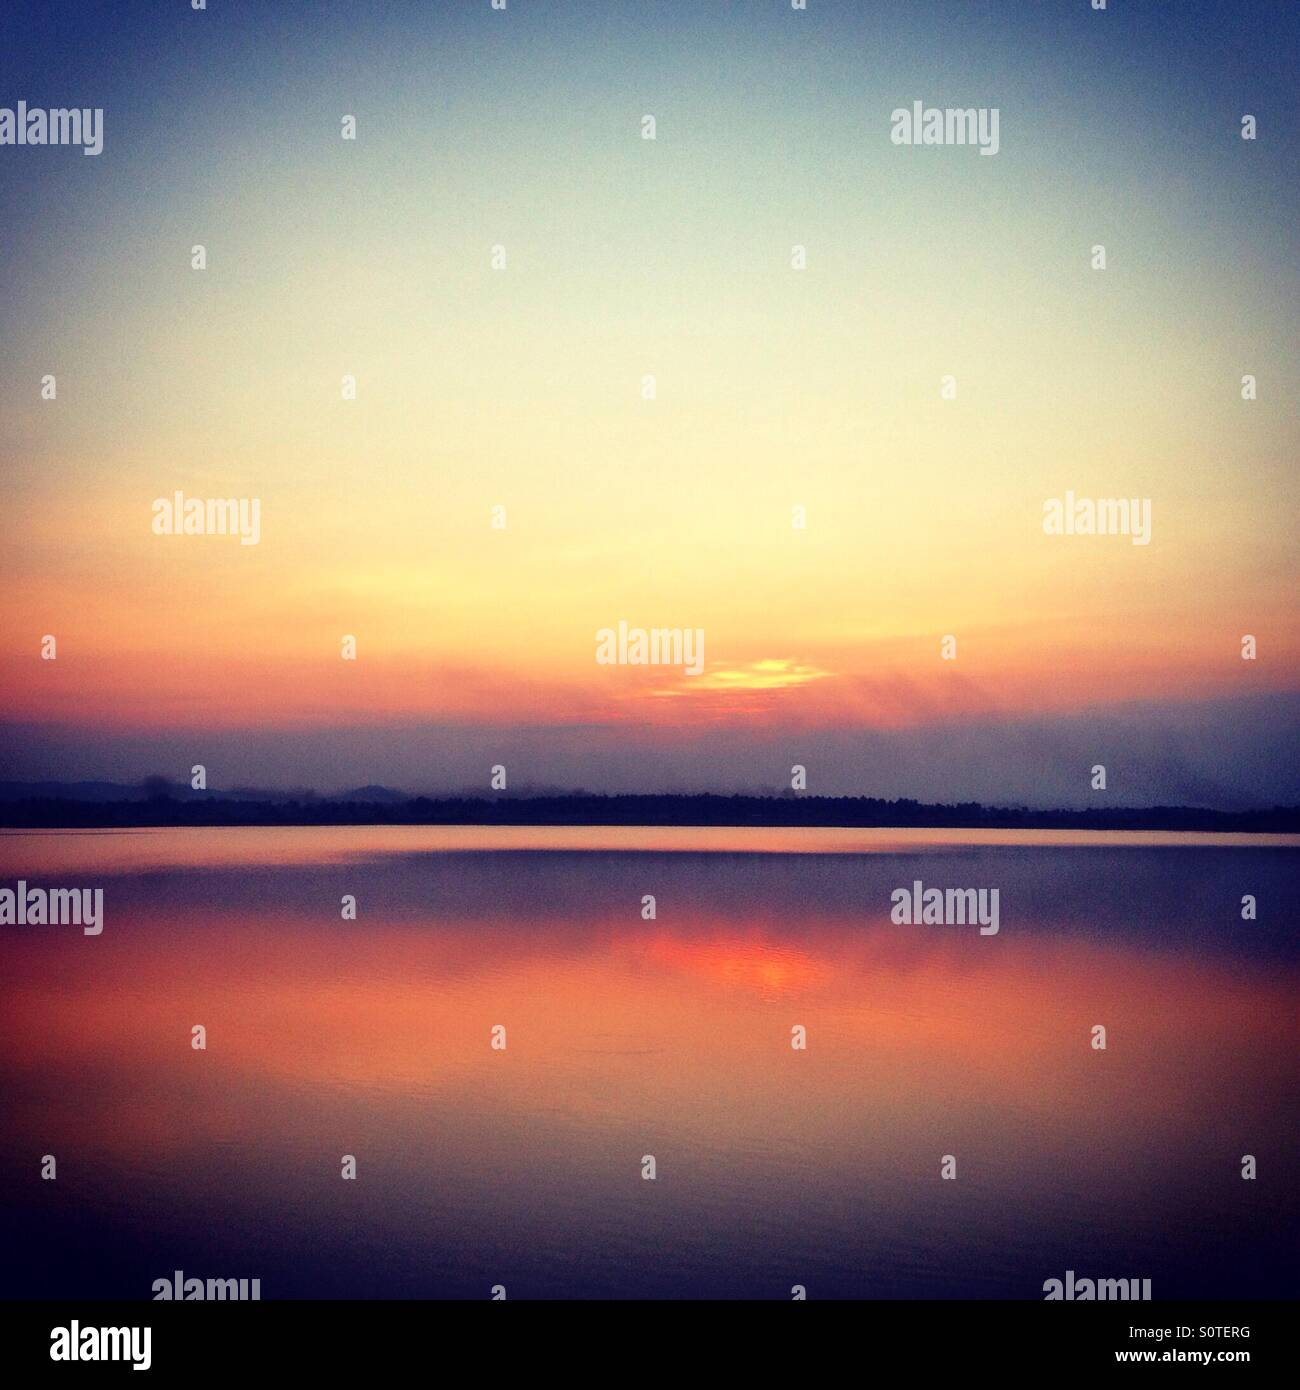 Sunset on a still lake in India - Stock Image